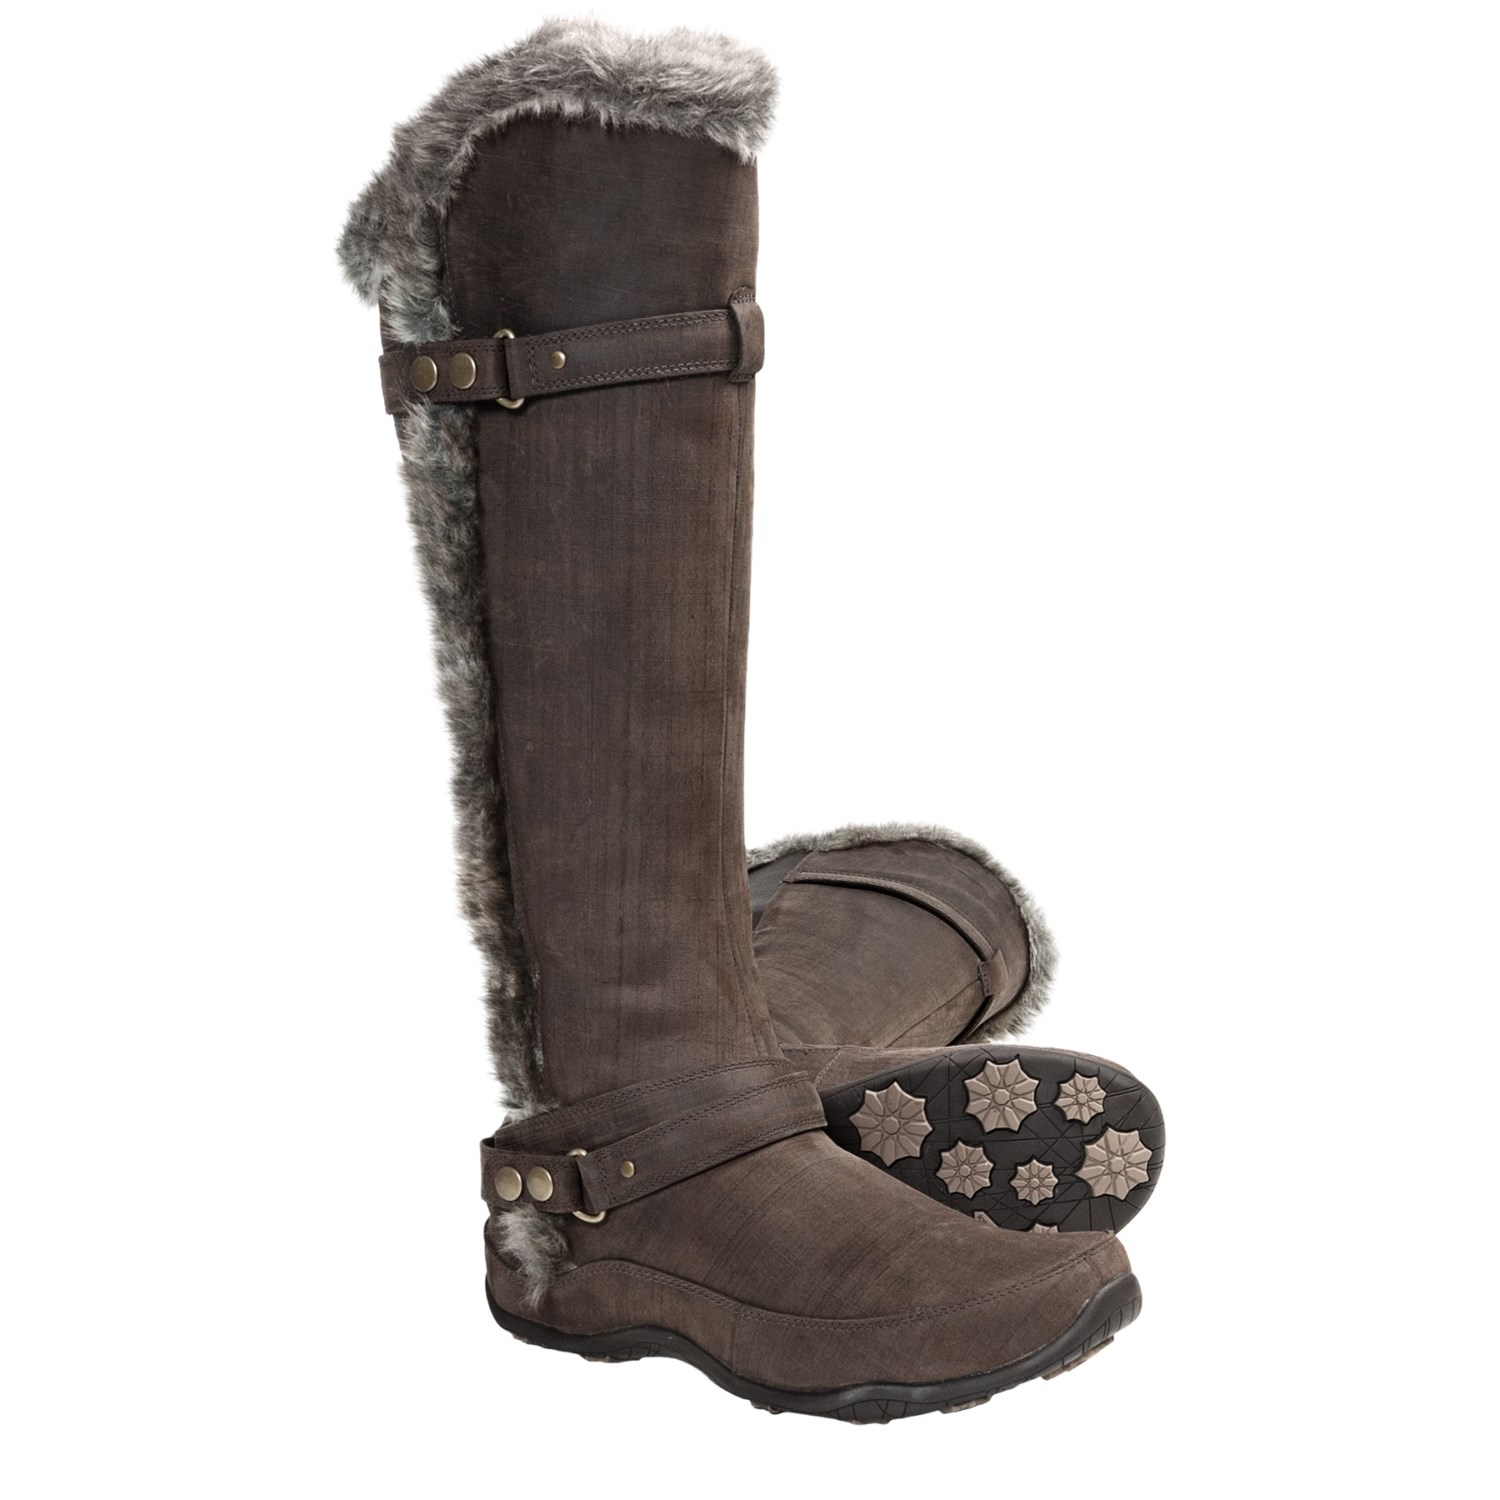 The North Face Women&39s Amore Winter Boots | Homewood Mountain Ski